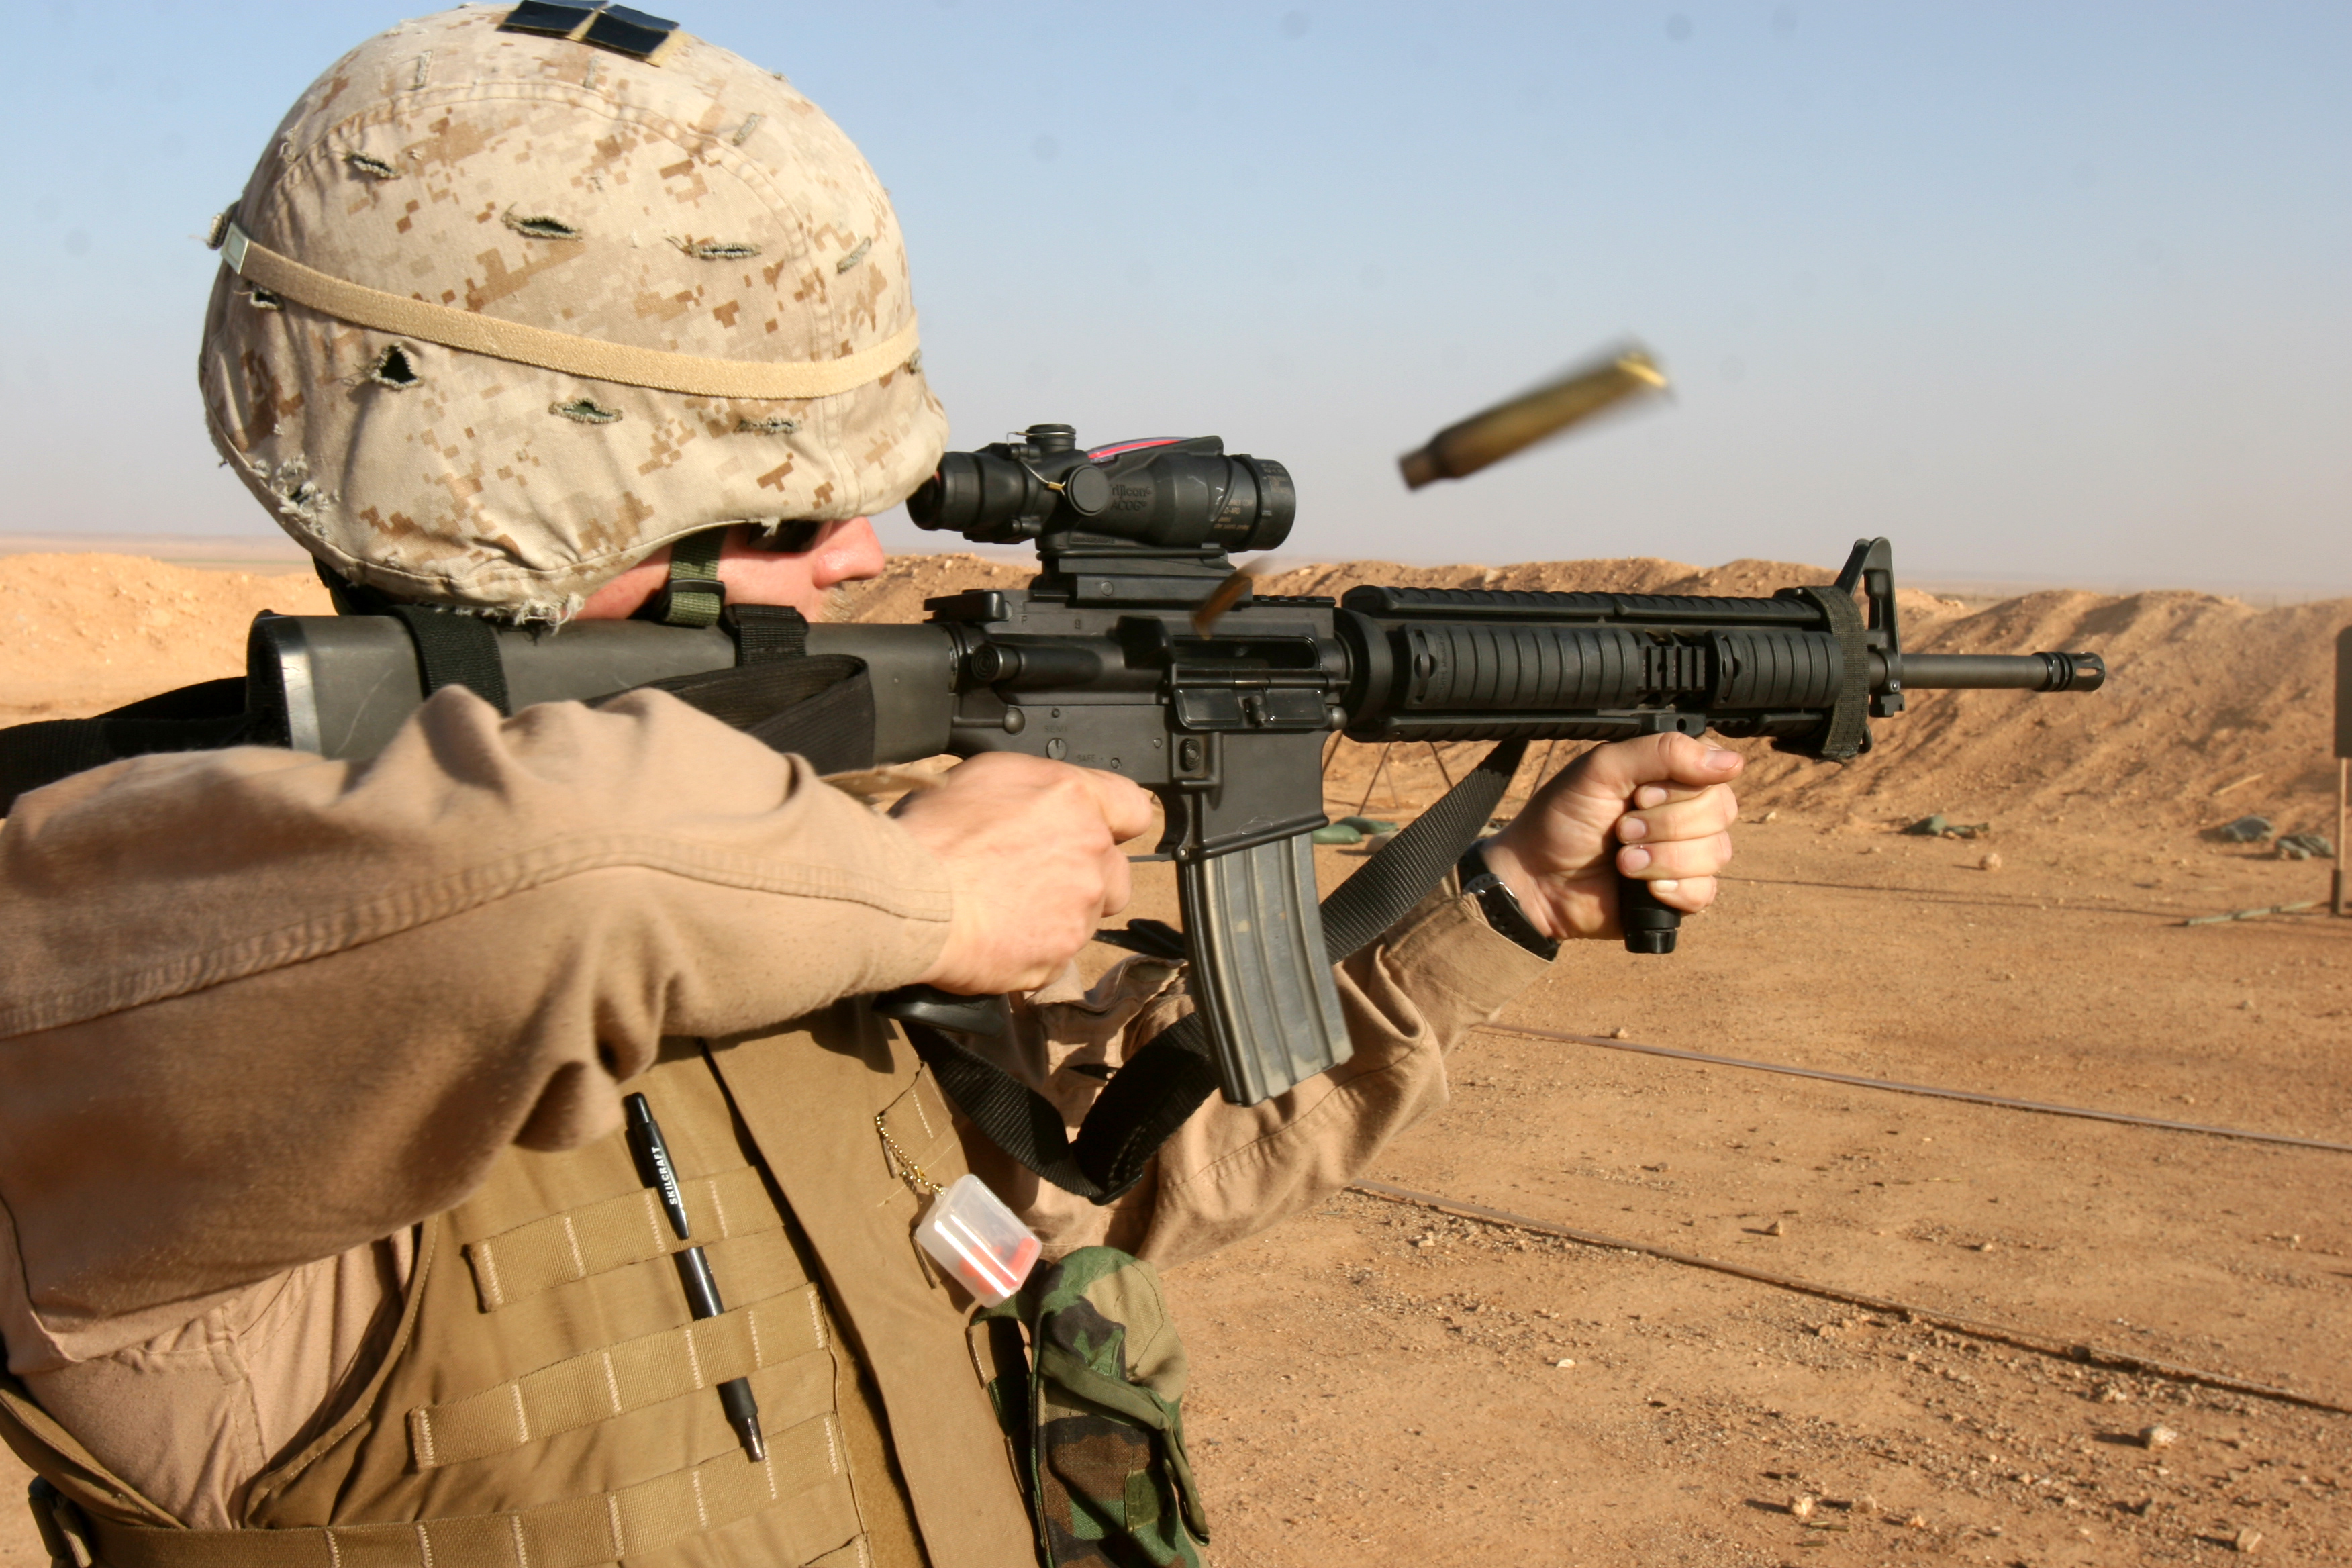 http://upload.wikimedia.org/wikipedia/commons/7/78/US_Marine_M16A4_Rifle_ACOG.jpg